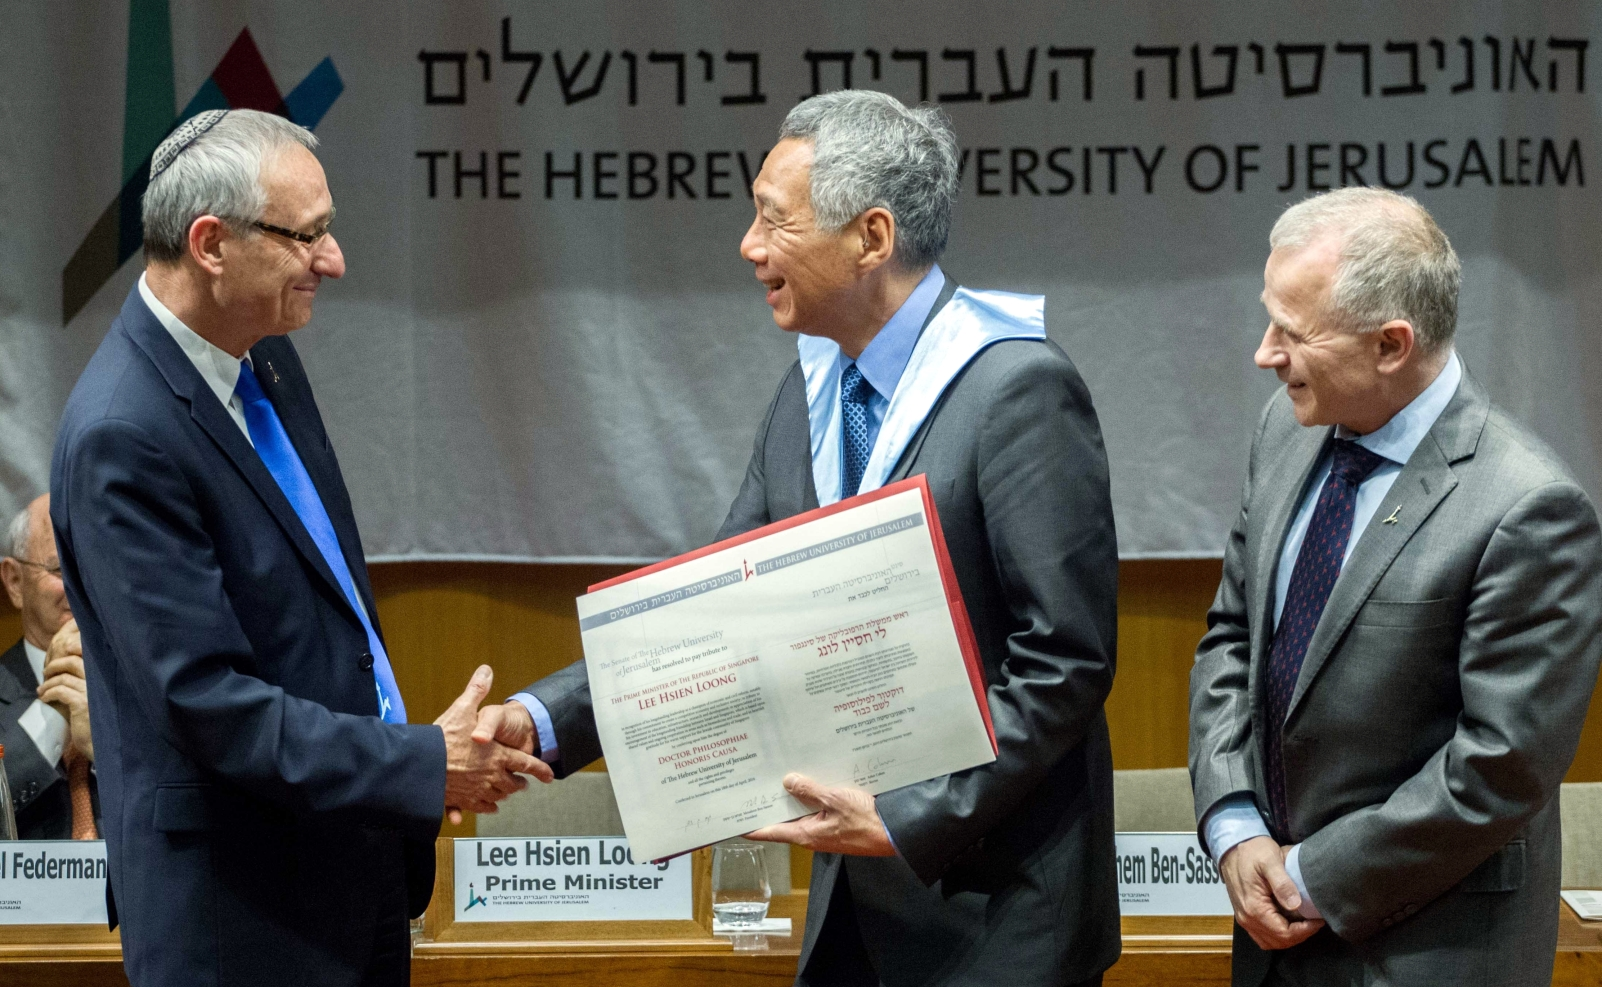 Hebrew University President Prof. Menahem Ben-Sasson, left,with Singapore's Prime Minister Lee Hsien Loong and Hebrew University Rector Prof. Asher Cohen. Photo by Miriam Alster/FLASH90 for HUJ